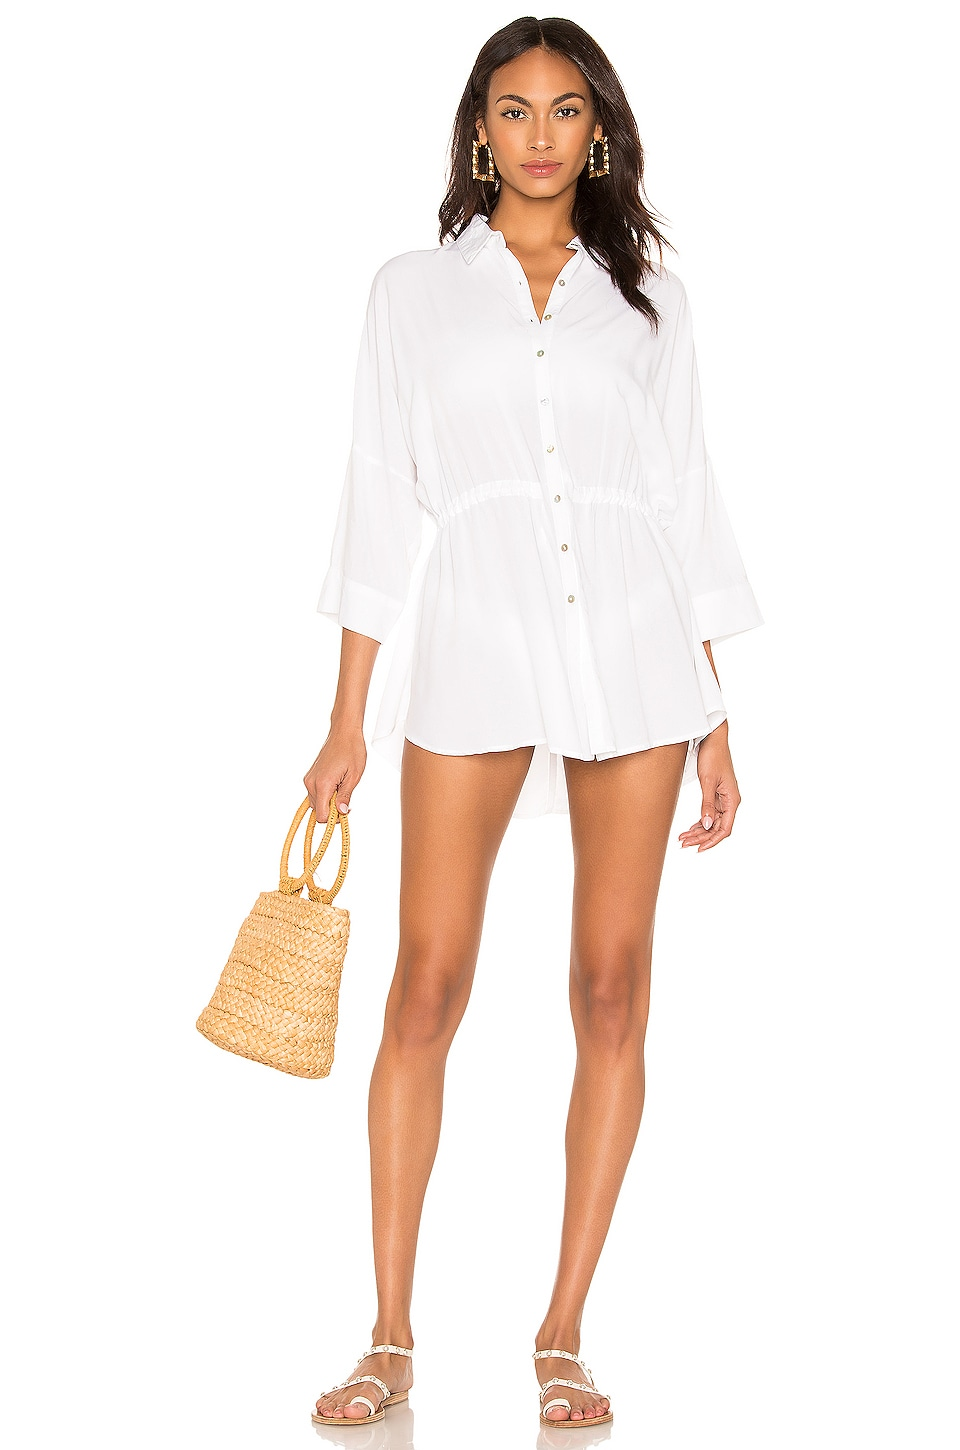 Pacifica Shirt Dress, view 2, click to view large image.